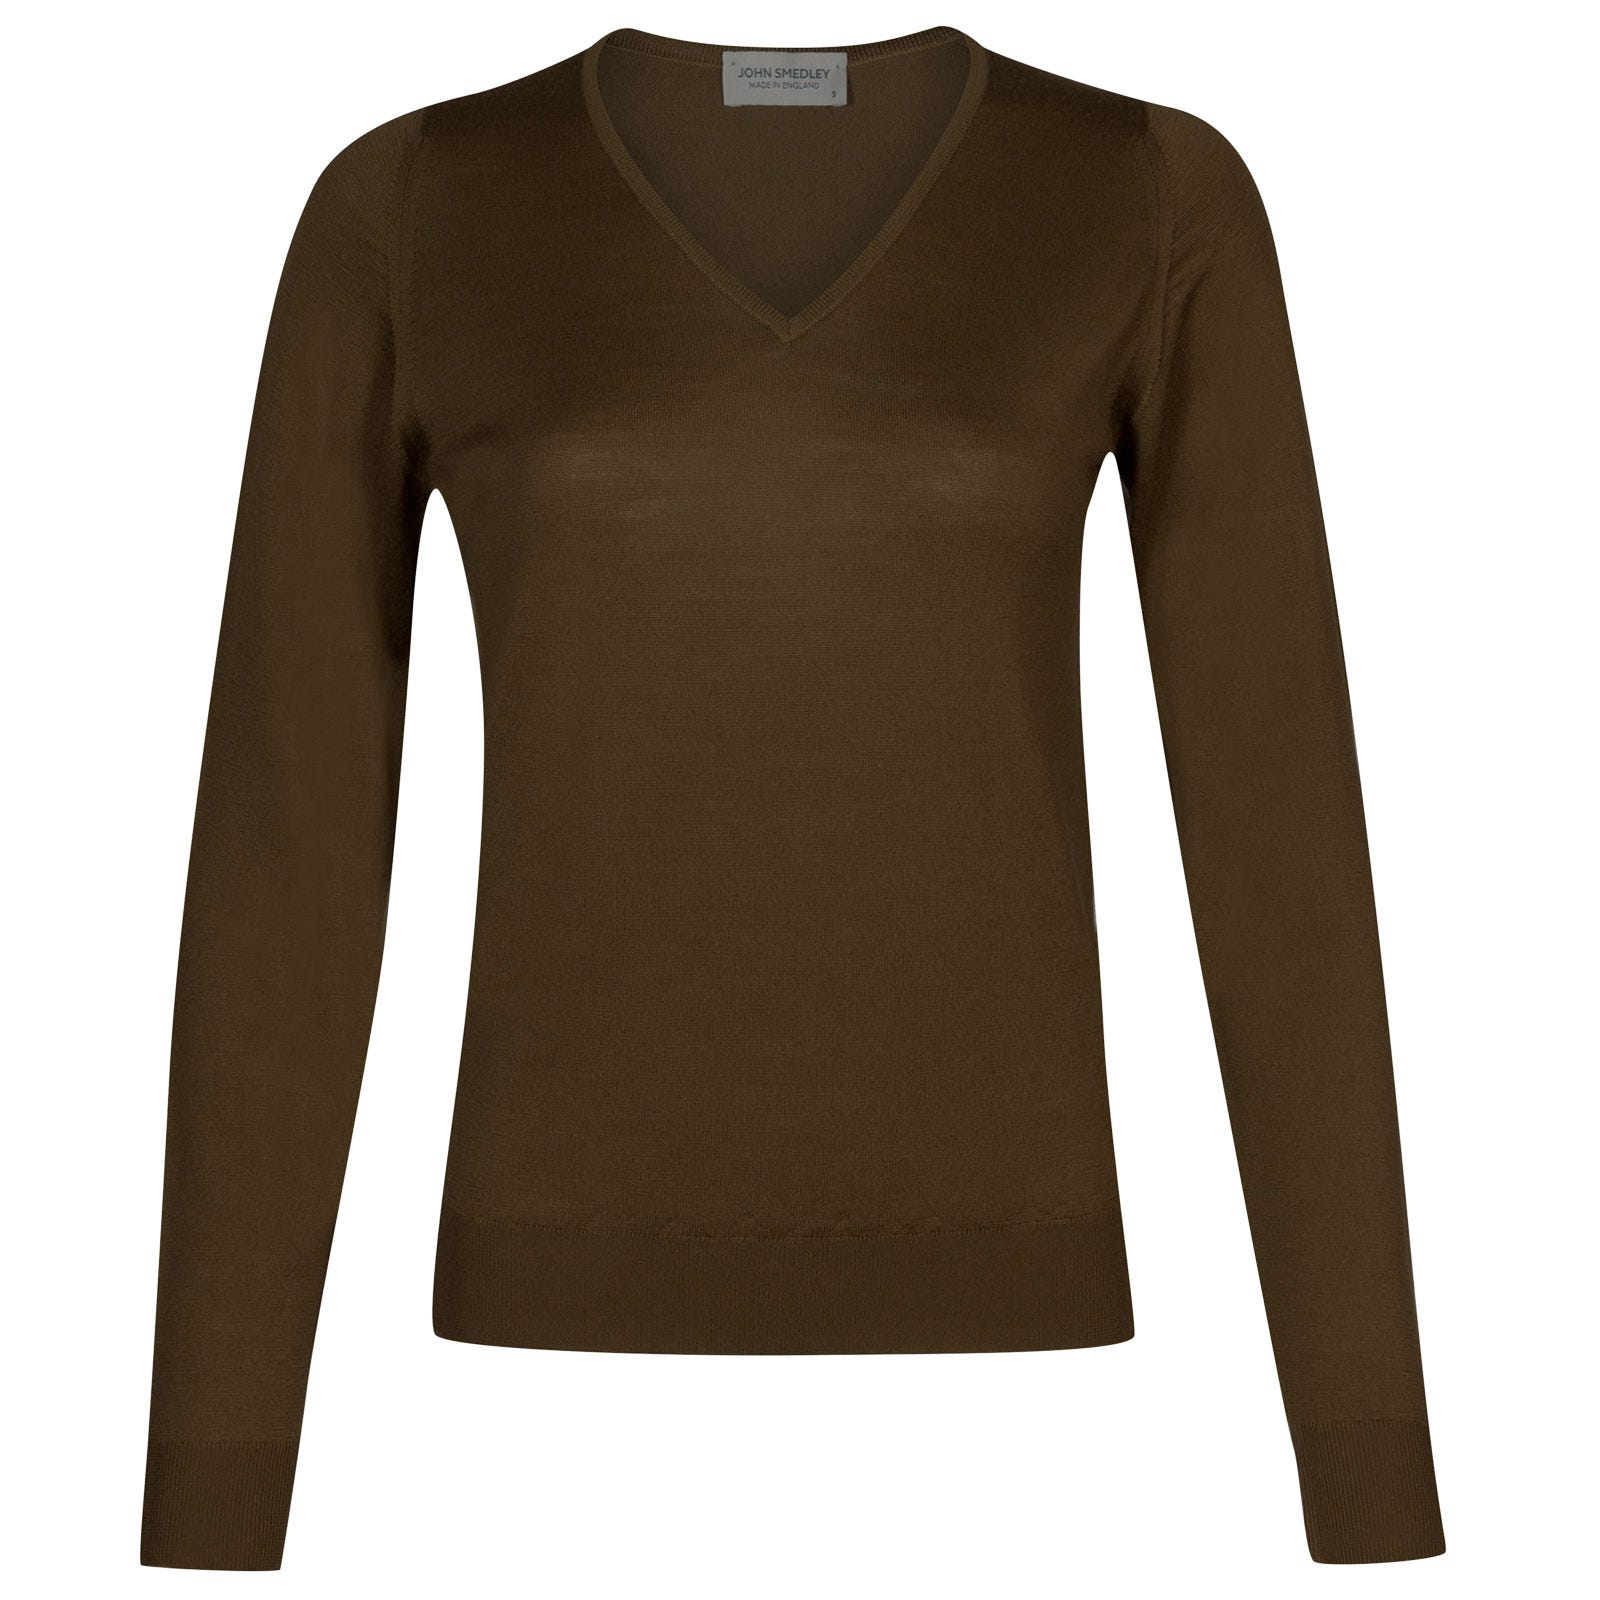 John Smedley manarola Merino Wool Sweater in Kielder Green-M